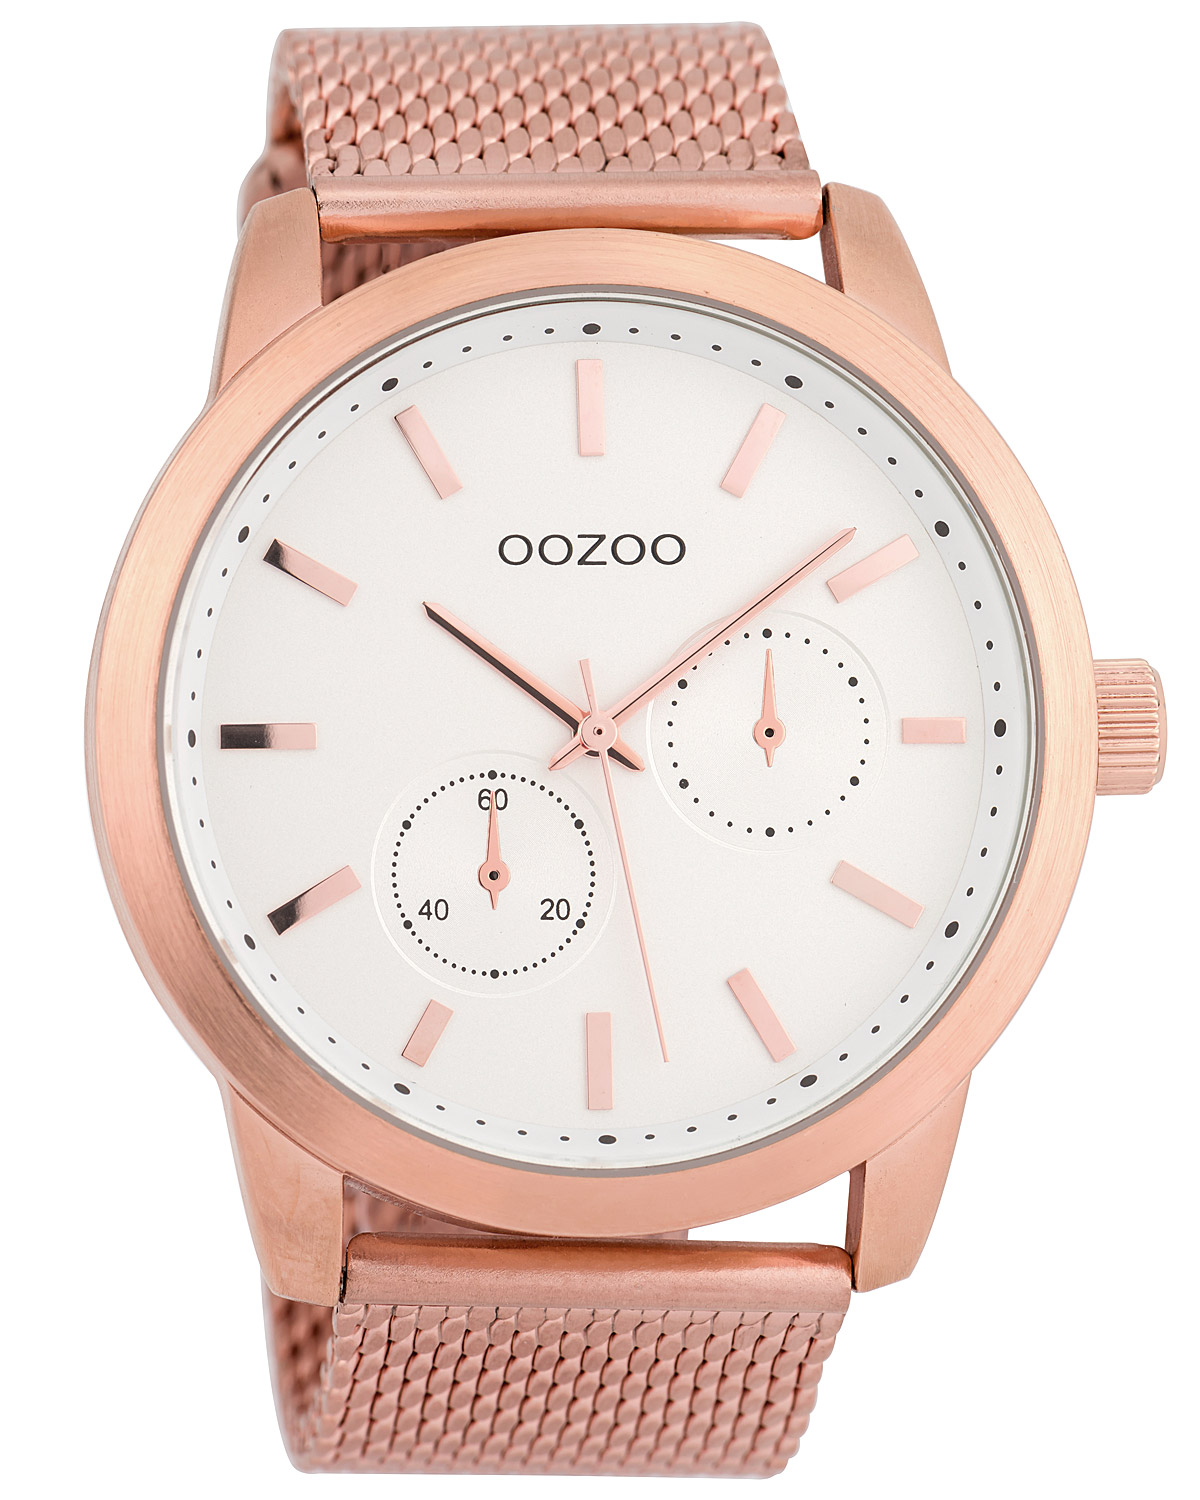 OOZOO Men s Watch with Mesh Bracelet White Rose 47 mm C9660 0581f898a14